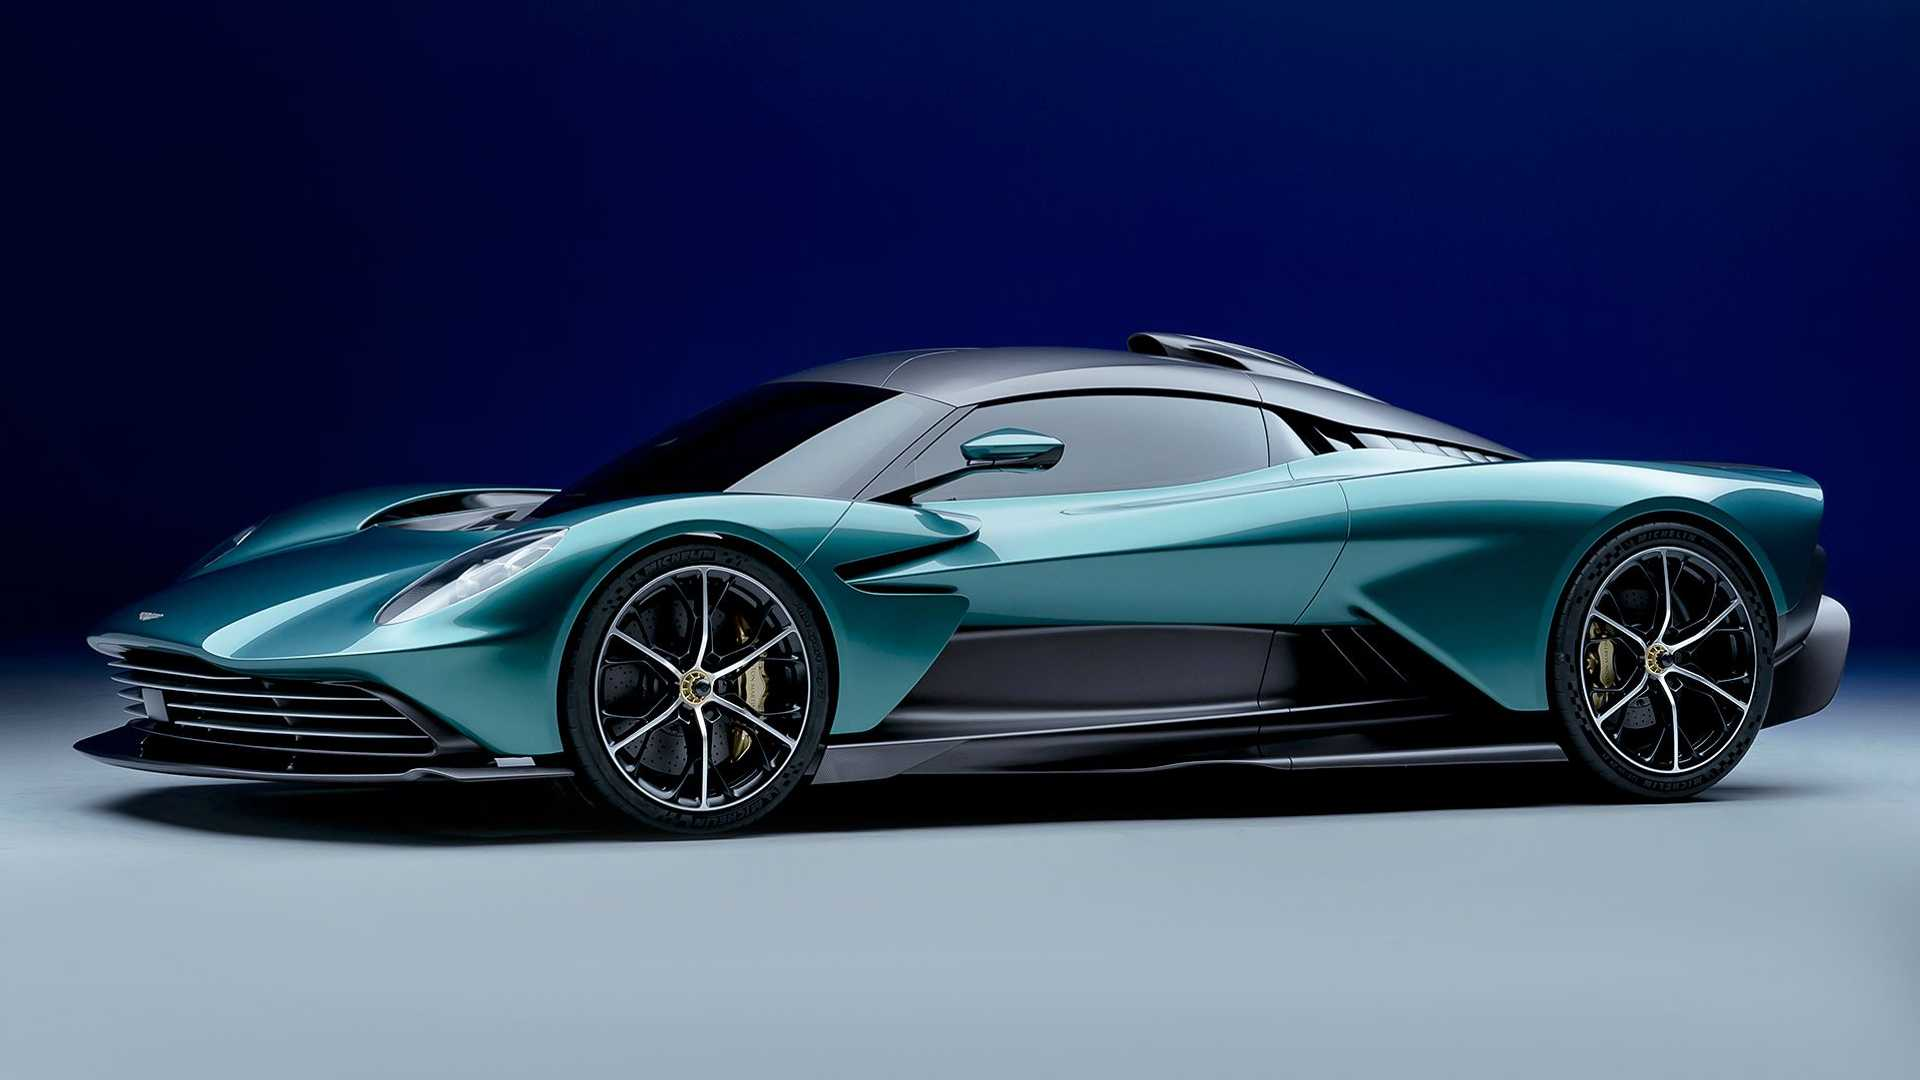 Lean, Mean, and Green: The Aston Martin Valhalla Is Your Latest 900+ Horsepower, $800,000 Rocket